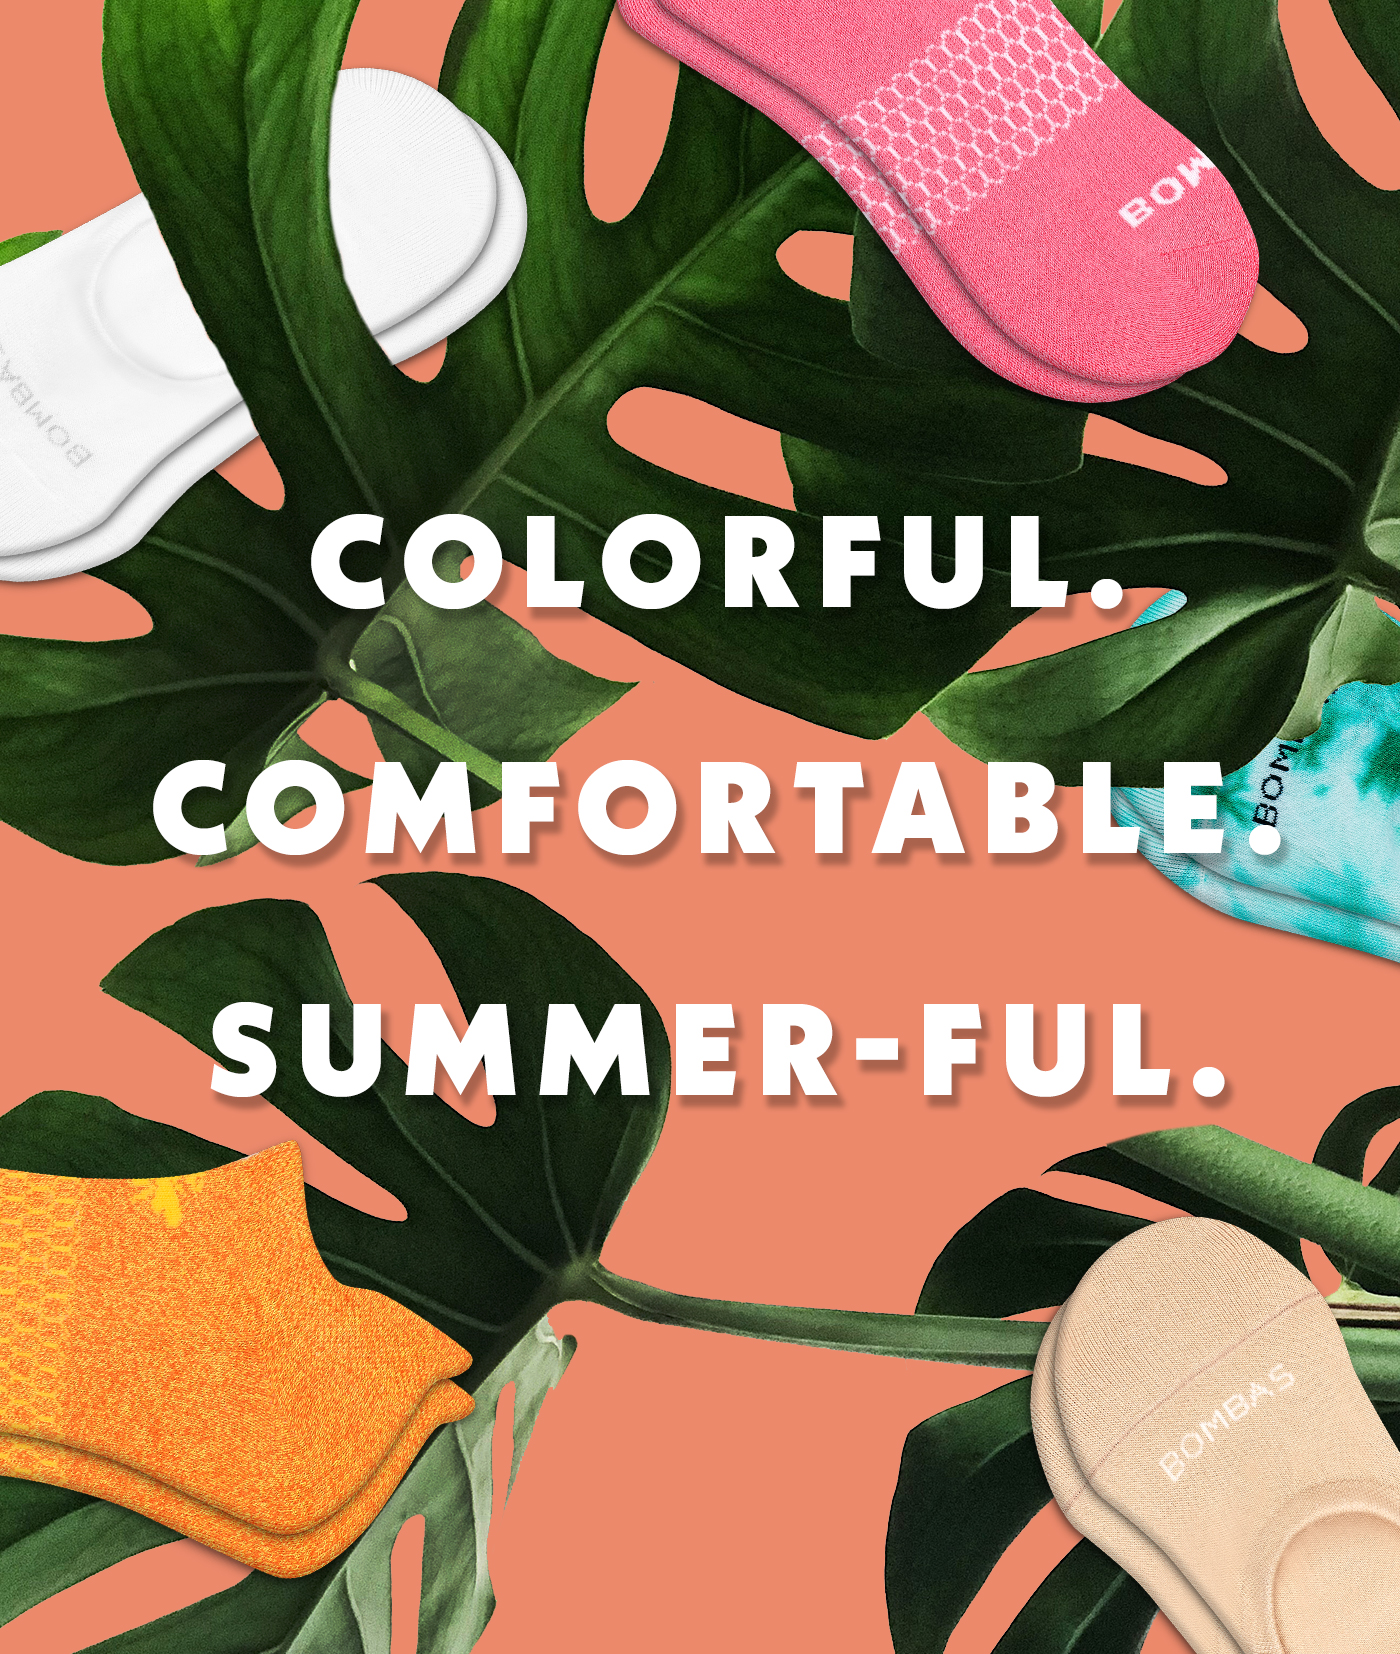 Colorful. Comfortable. Summer-Ful.